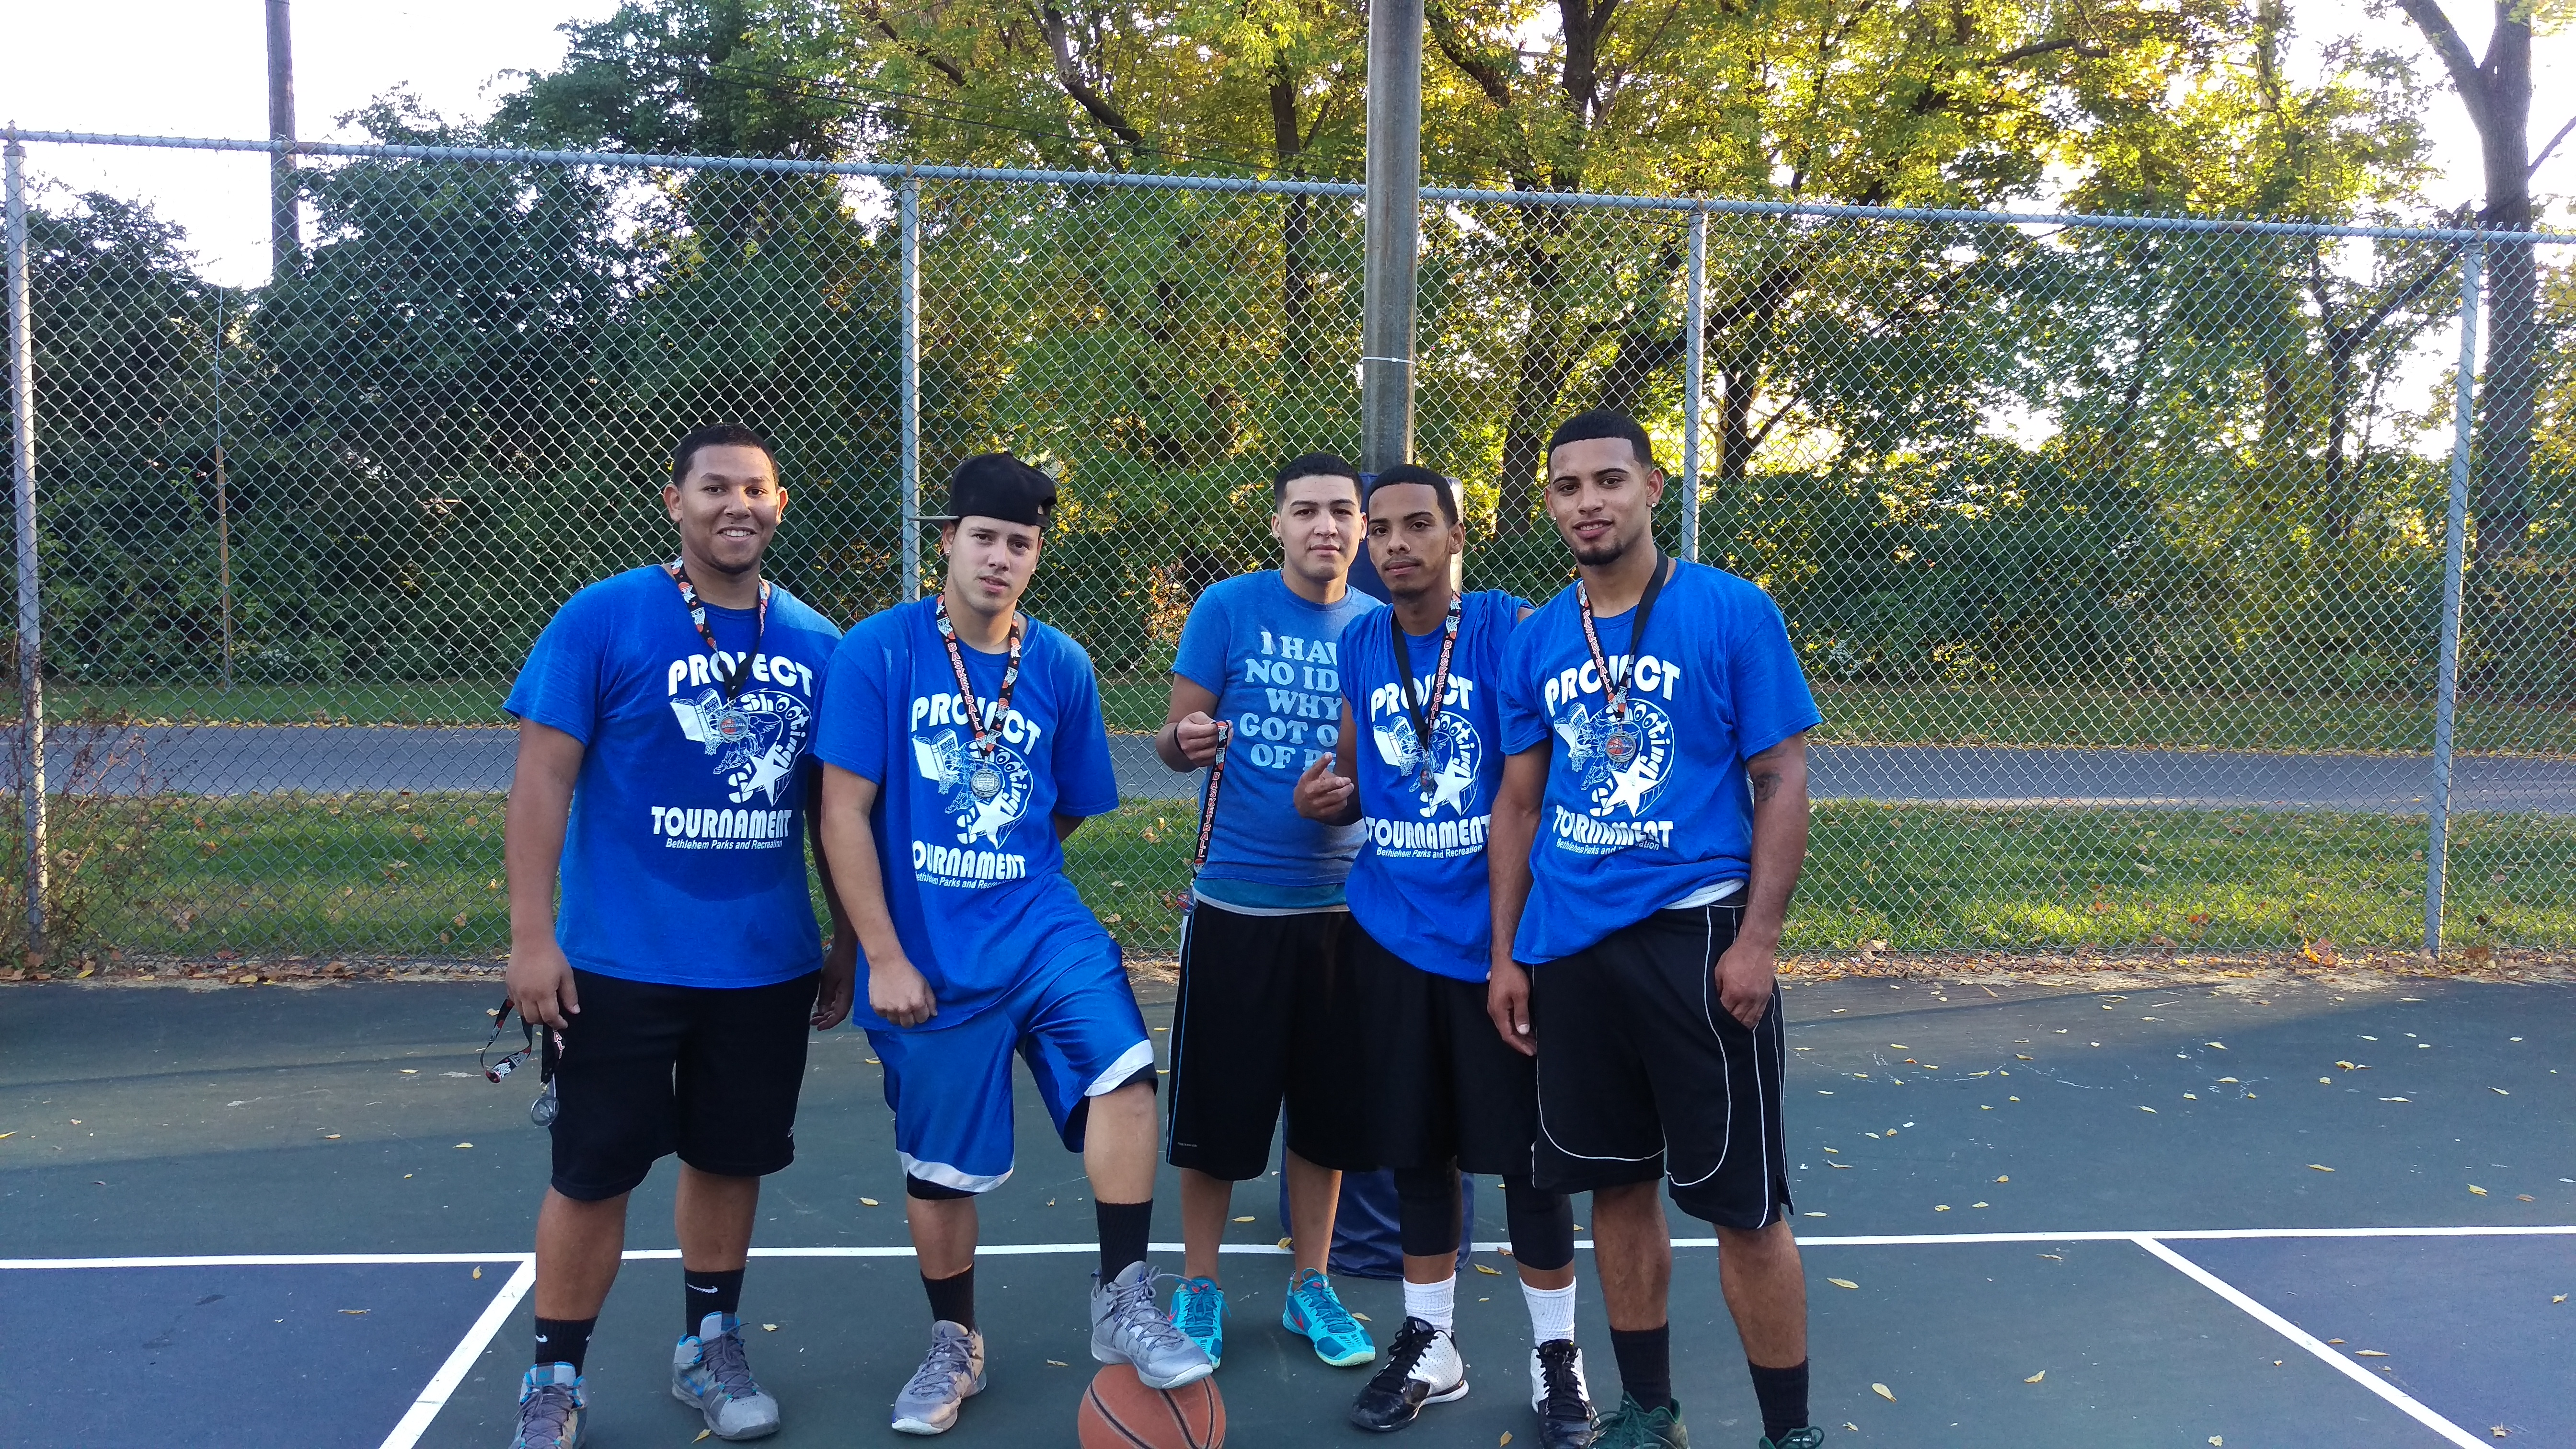 Blue South Terrace Team 2nd Place